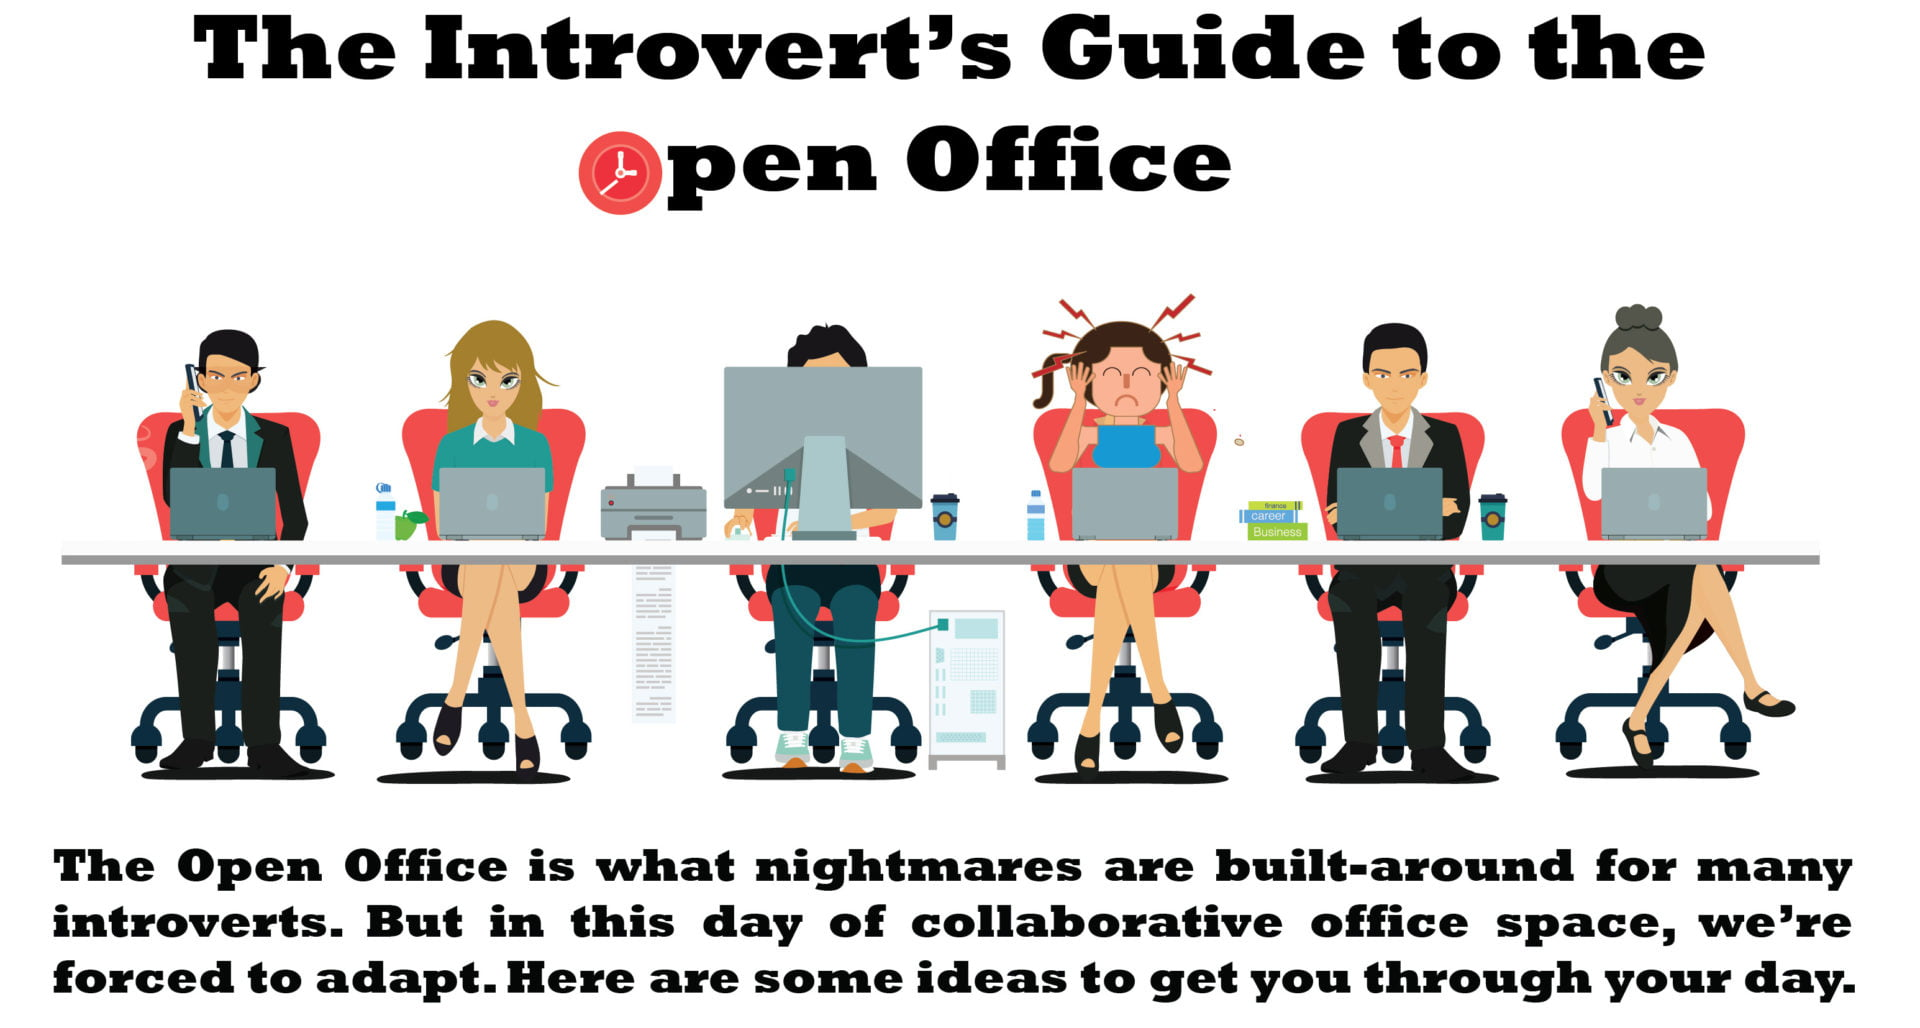 an introverts guide to the open office